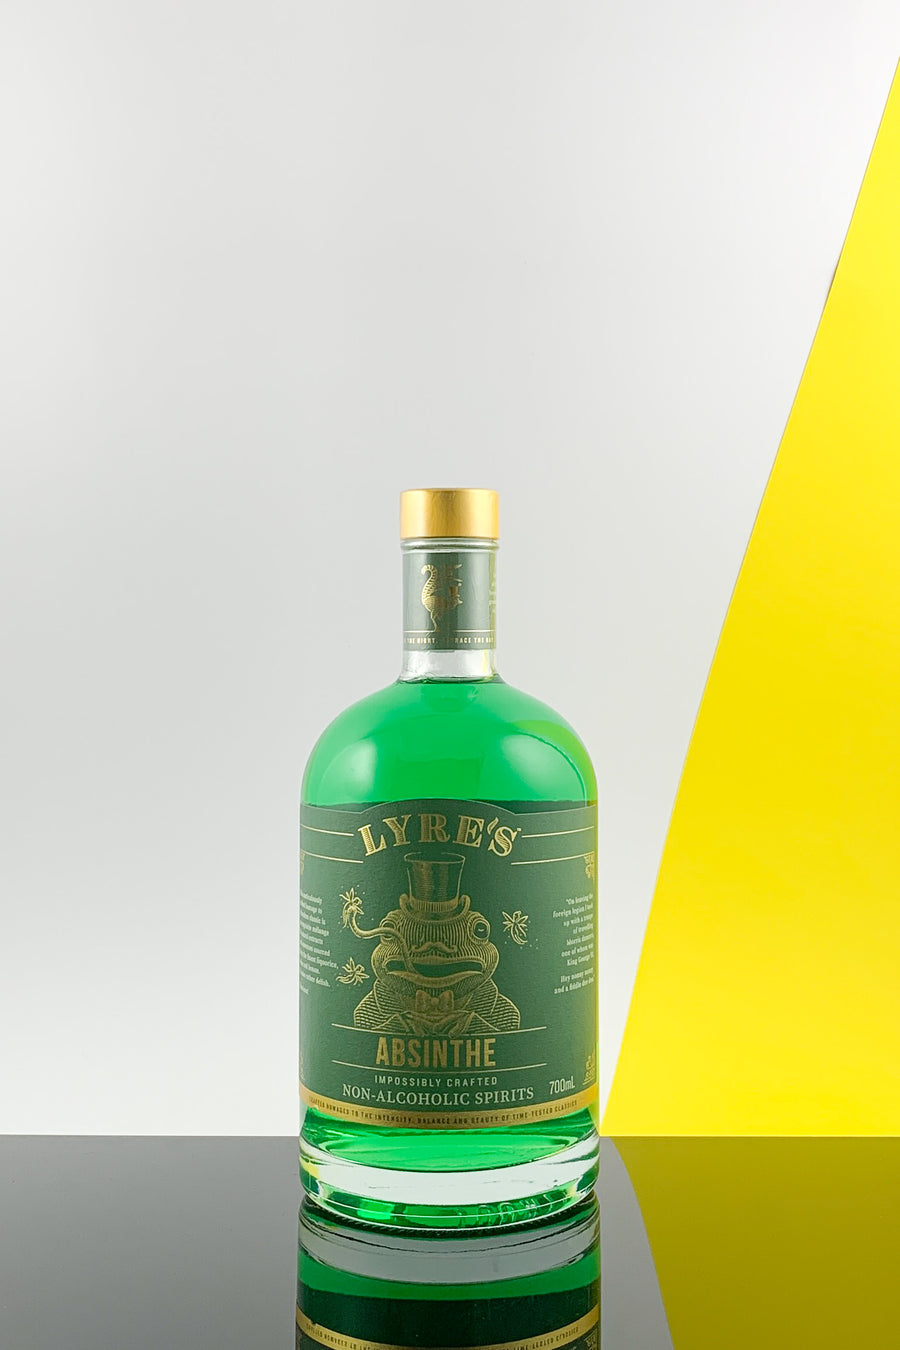 Lyre's Non Alcoholic Absinthe